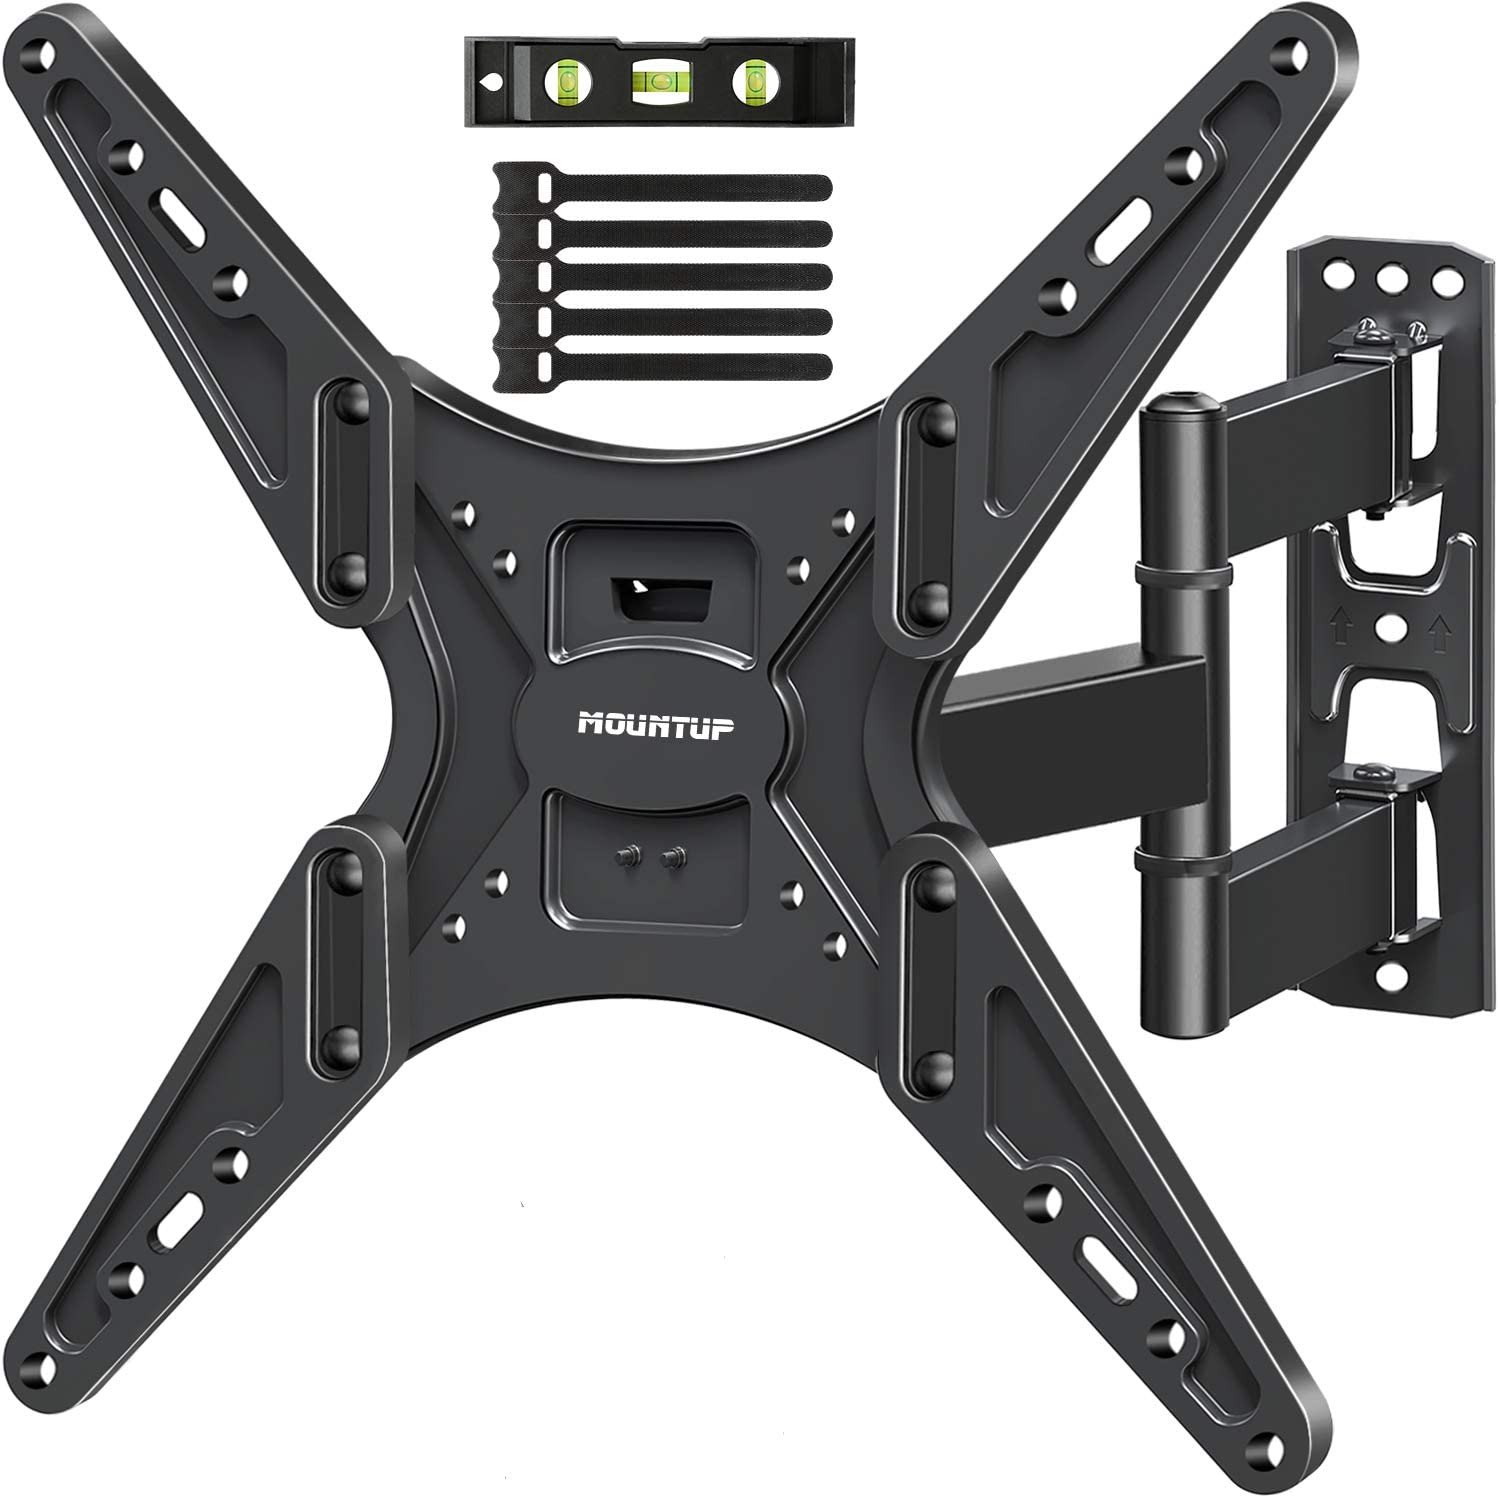 MOUNTUPTV Wall Mount, Full Motion Tilting TV Mount Bracketfor Most26-55 Inch Flat Curved TVs with Articulating Arms, Wall Mount TV Bracket with MaxVESA400X400mm and 88lbs, Fits Single Stud MU0014